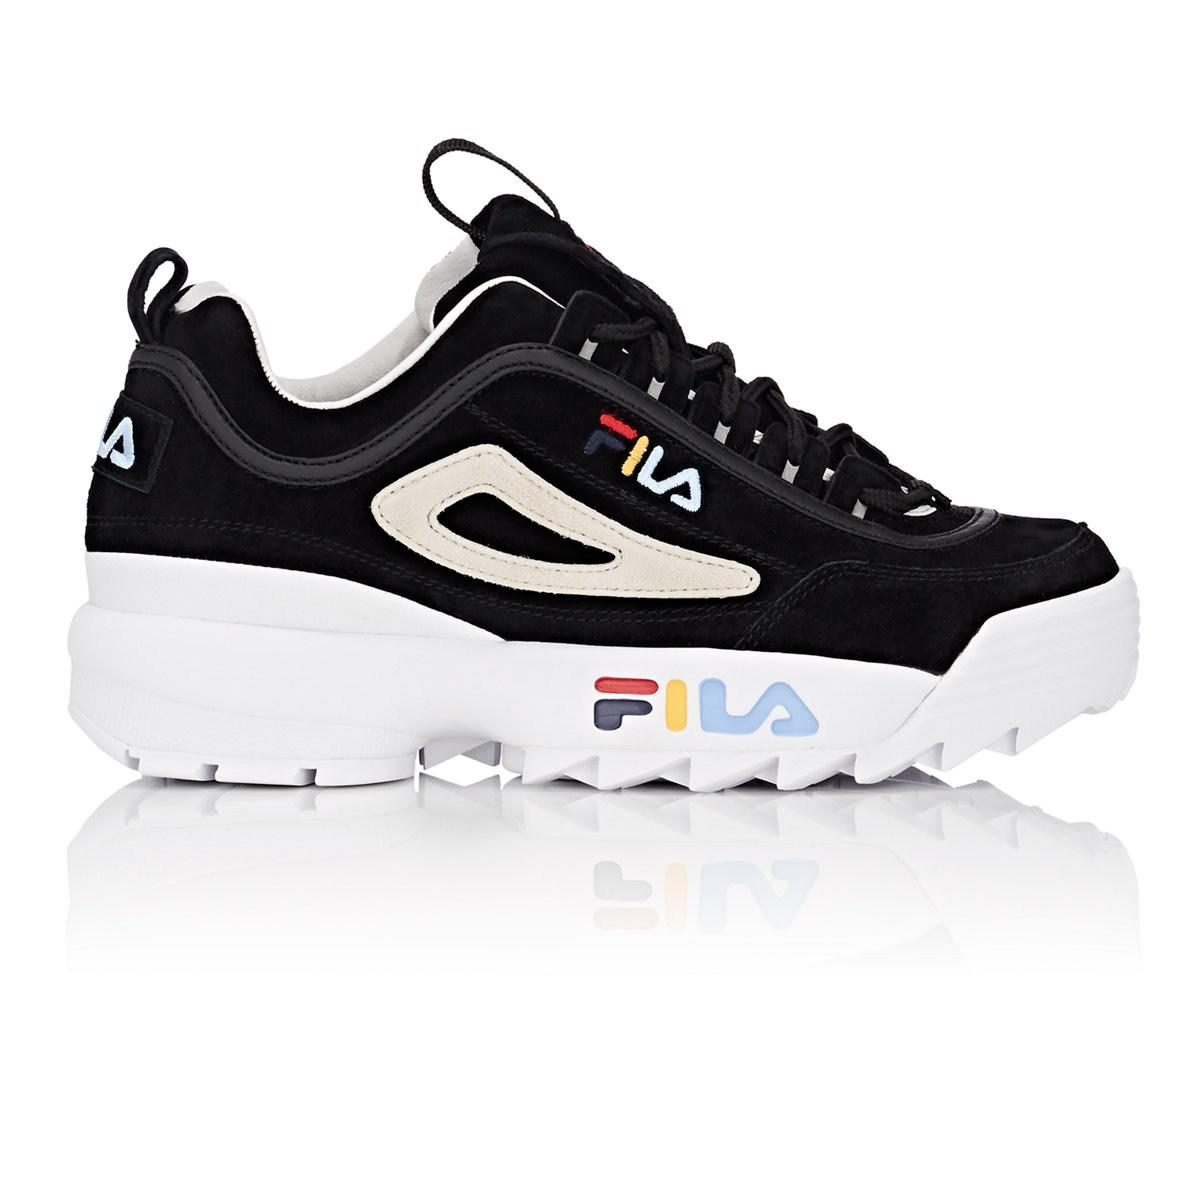 5ff852d28968 official photos 81f35 653bc Lyst - Fila Disruptor Ii Nubuck Sneakers in  Black .